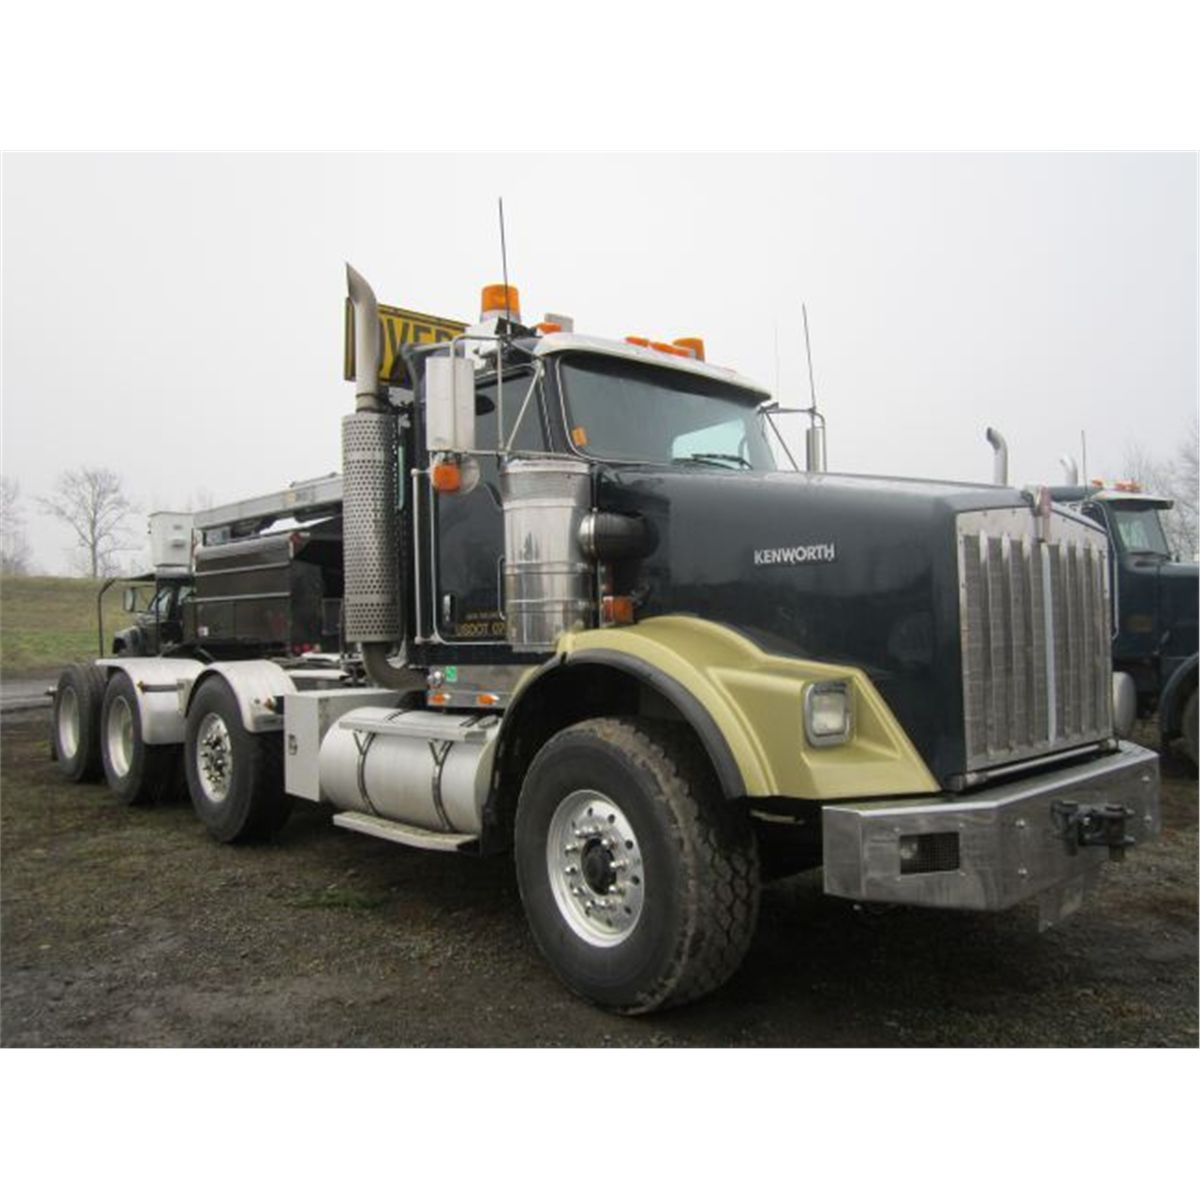 small resolution of  image 4 2007 kenworth t800 heavy haul truck tractor